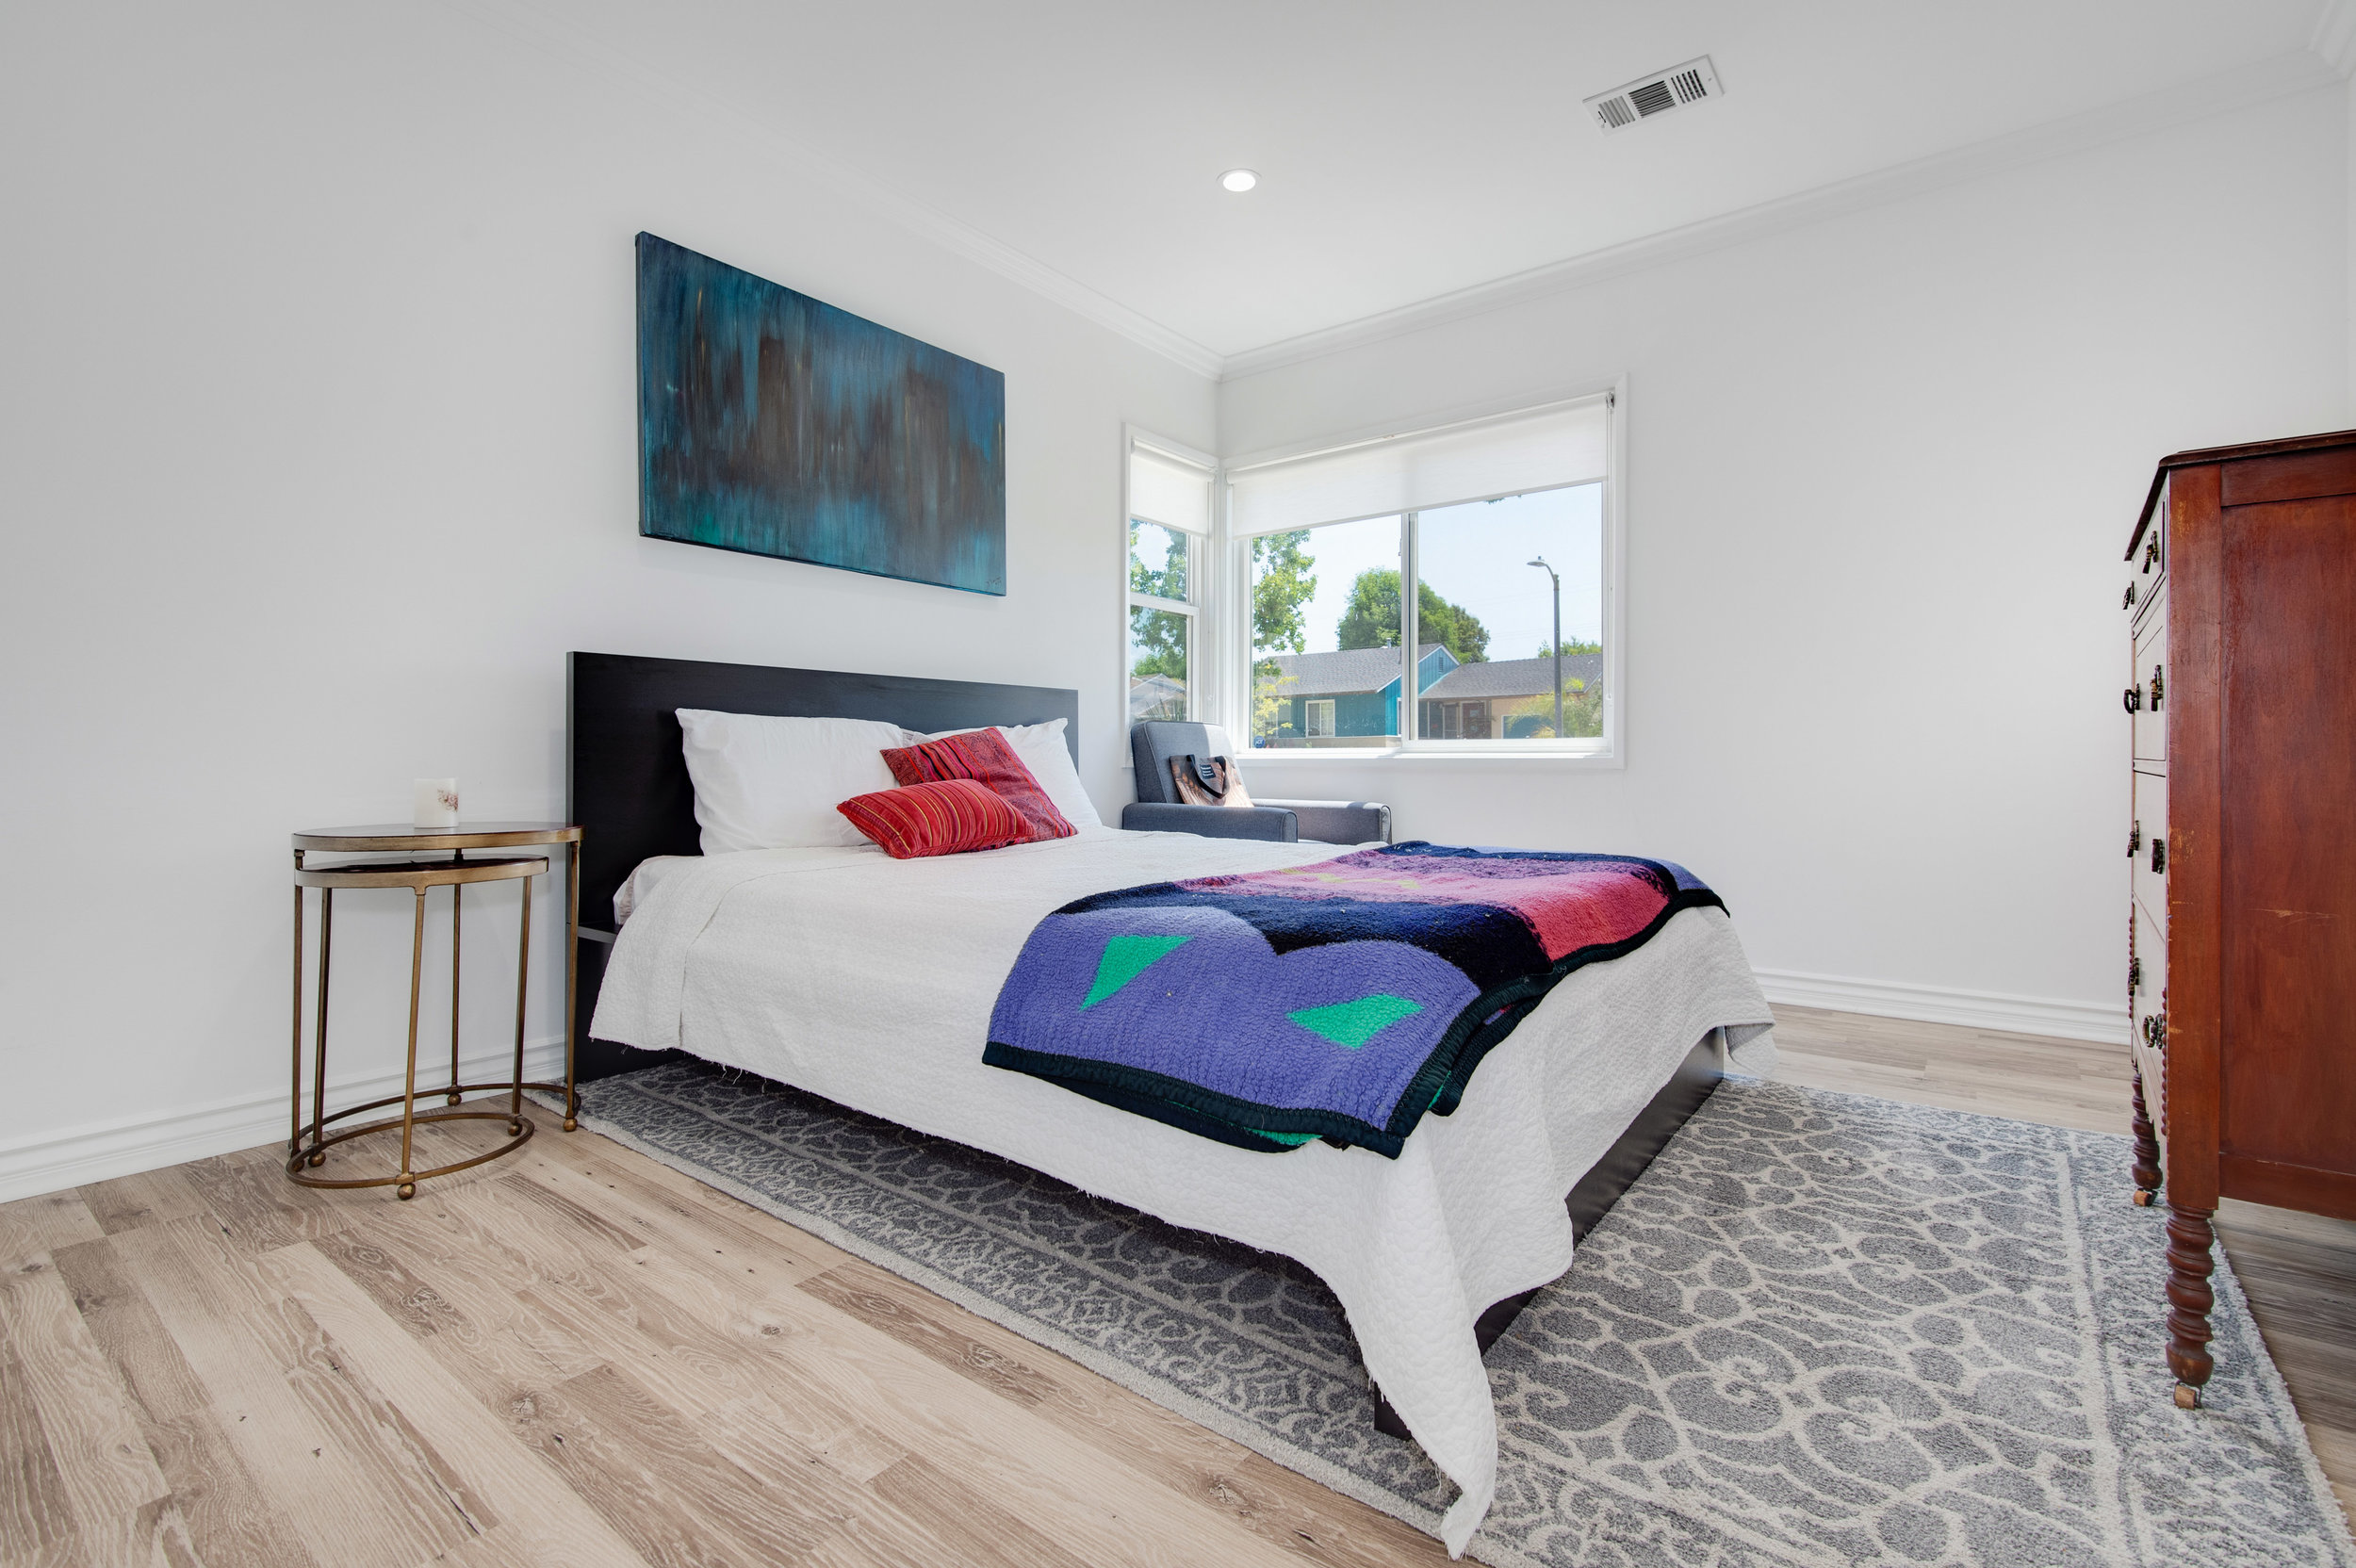 009 7612 Midfield Avenue Westchester Los Angeles For Sale Lease The Malibu Life Team Luxury Real Estate.jpg